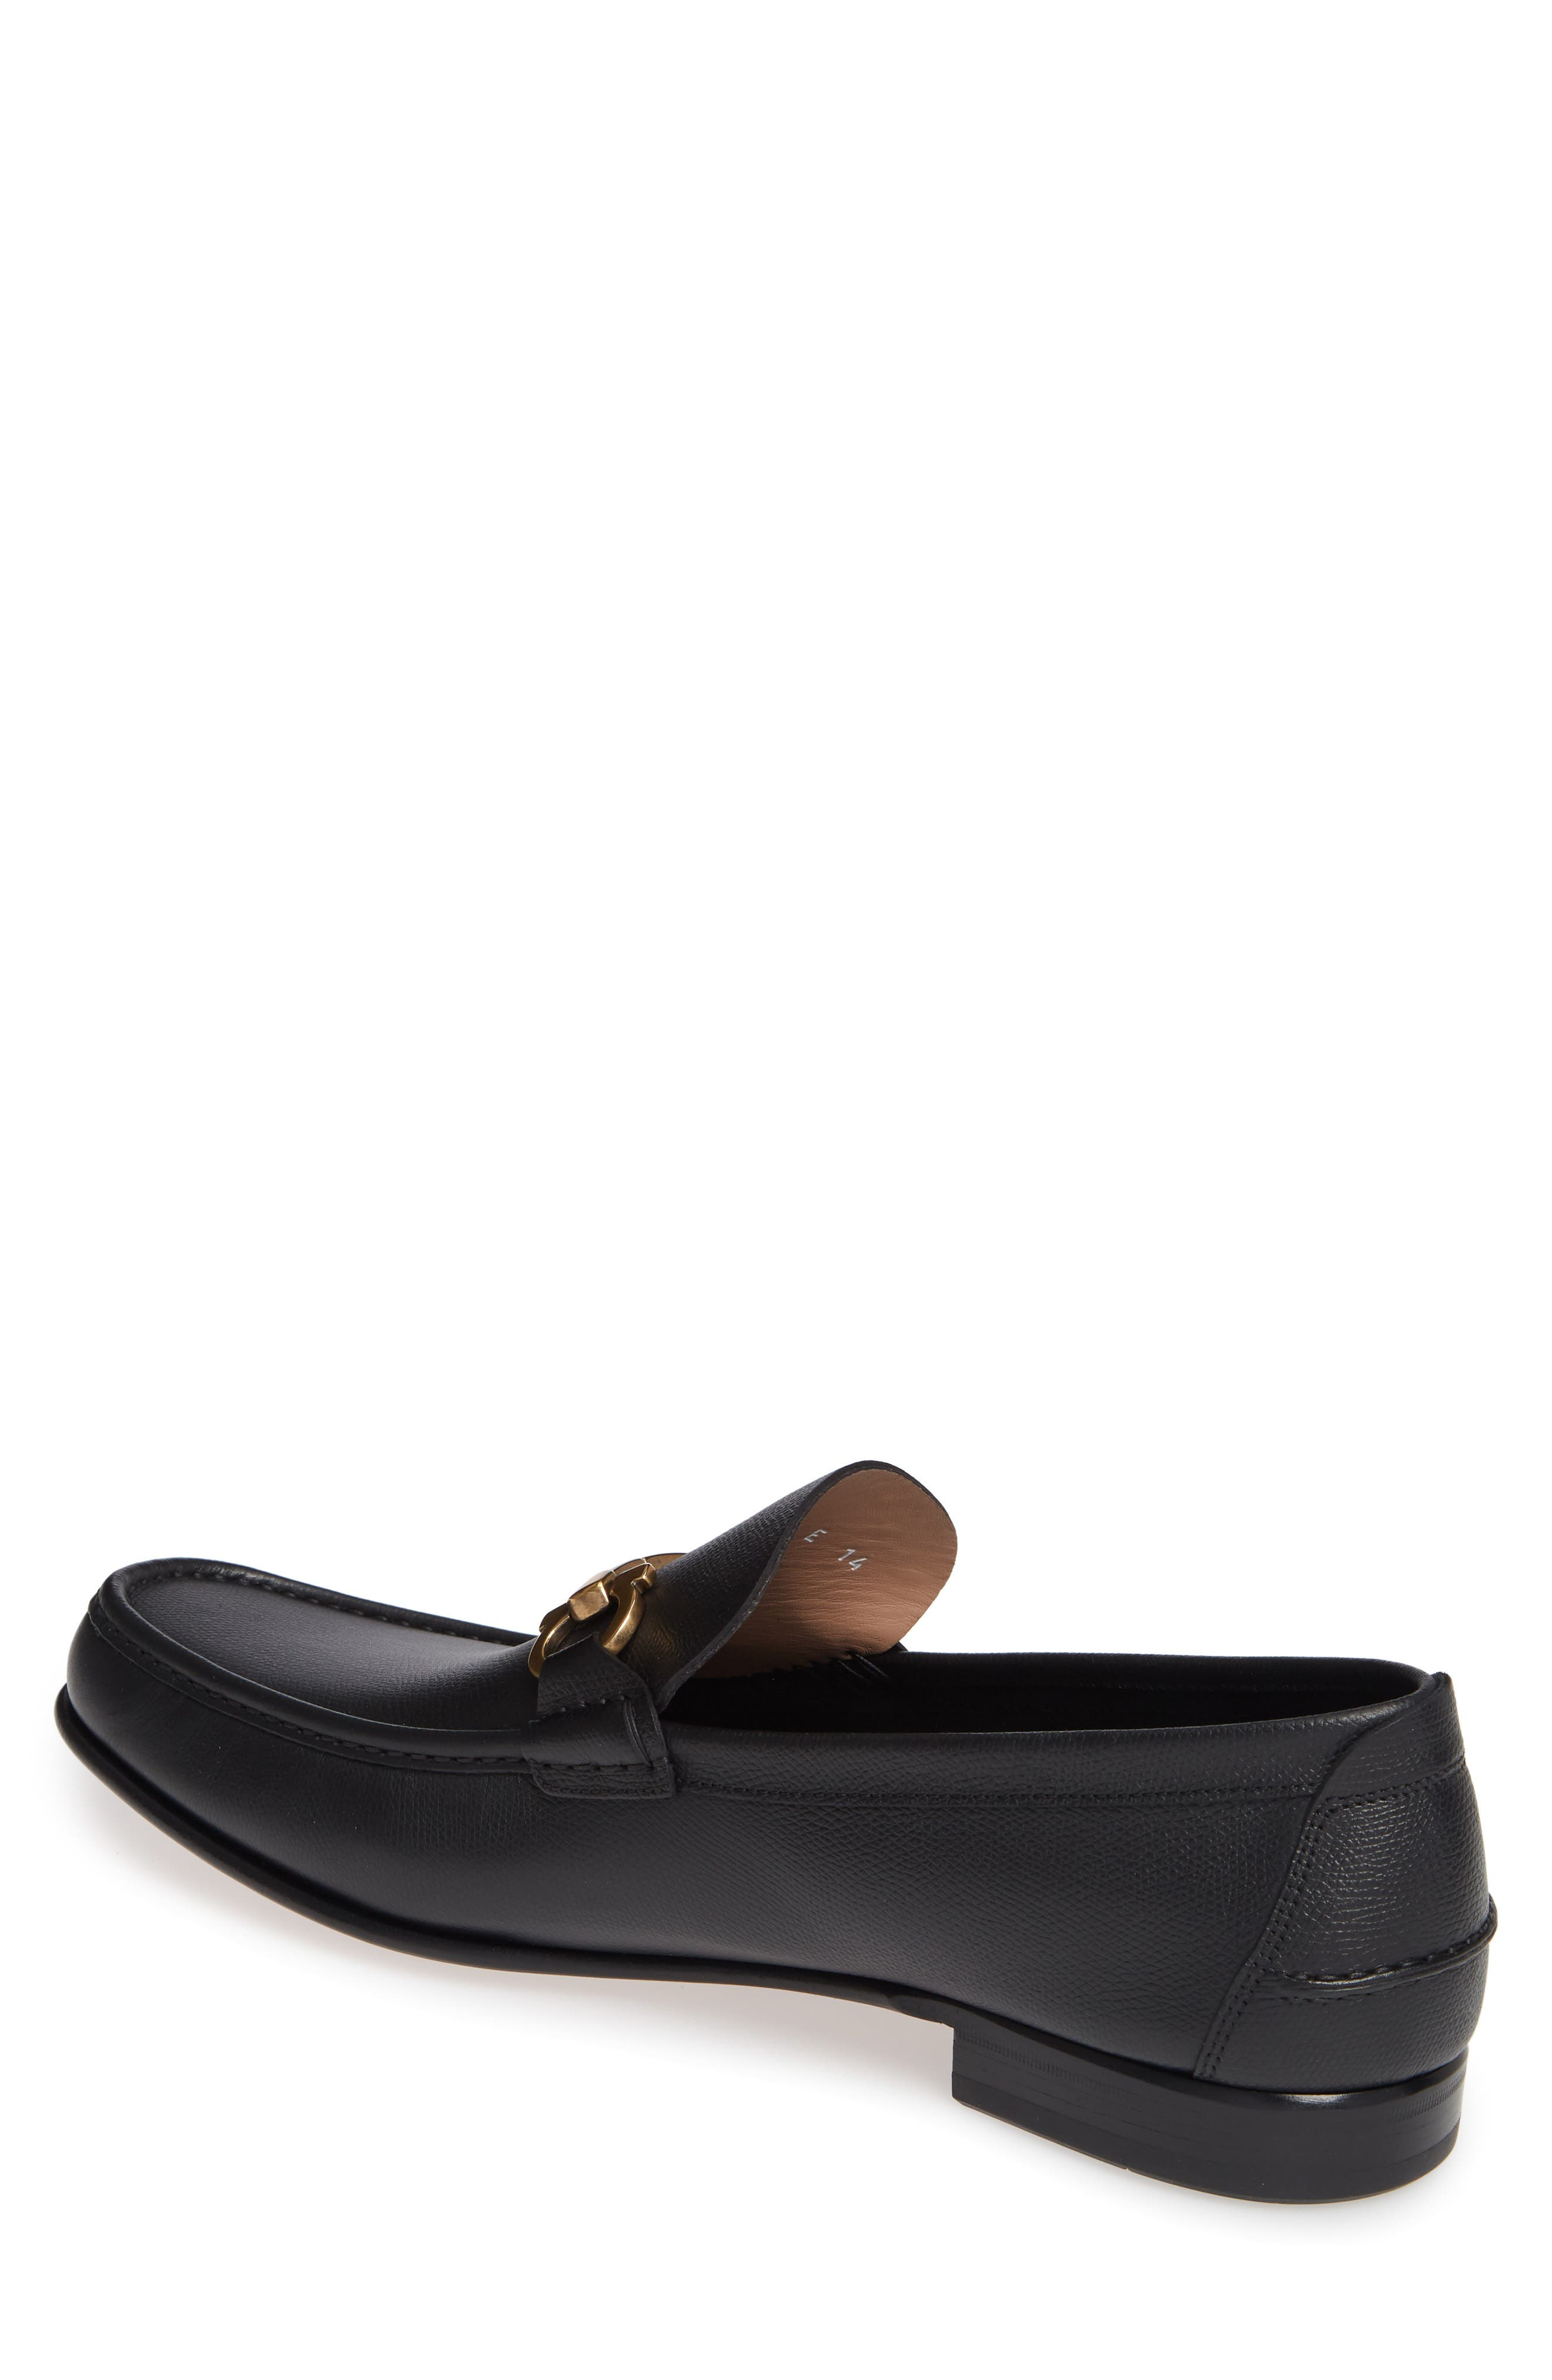 Fiordi Bit Loafer,                             Alternate thumbnail 2, color,                             NERO LEATHER